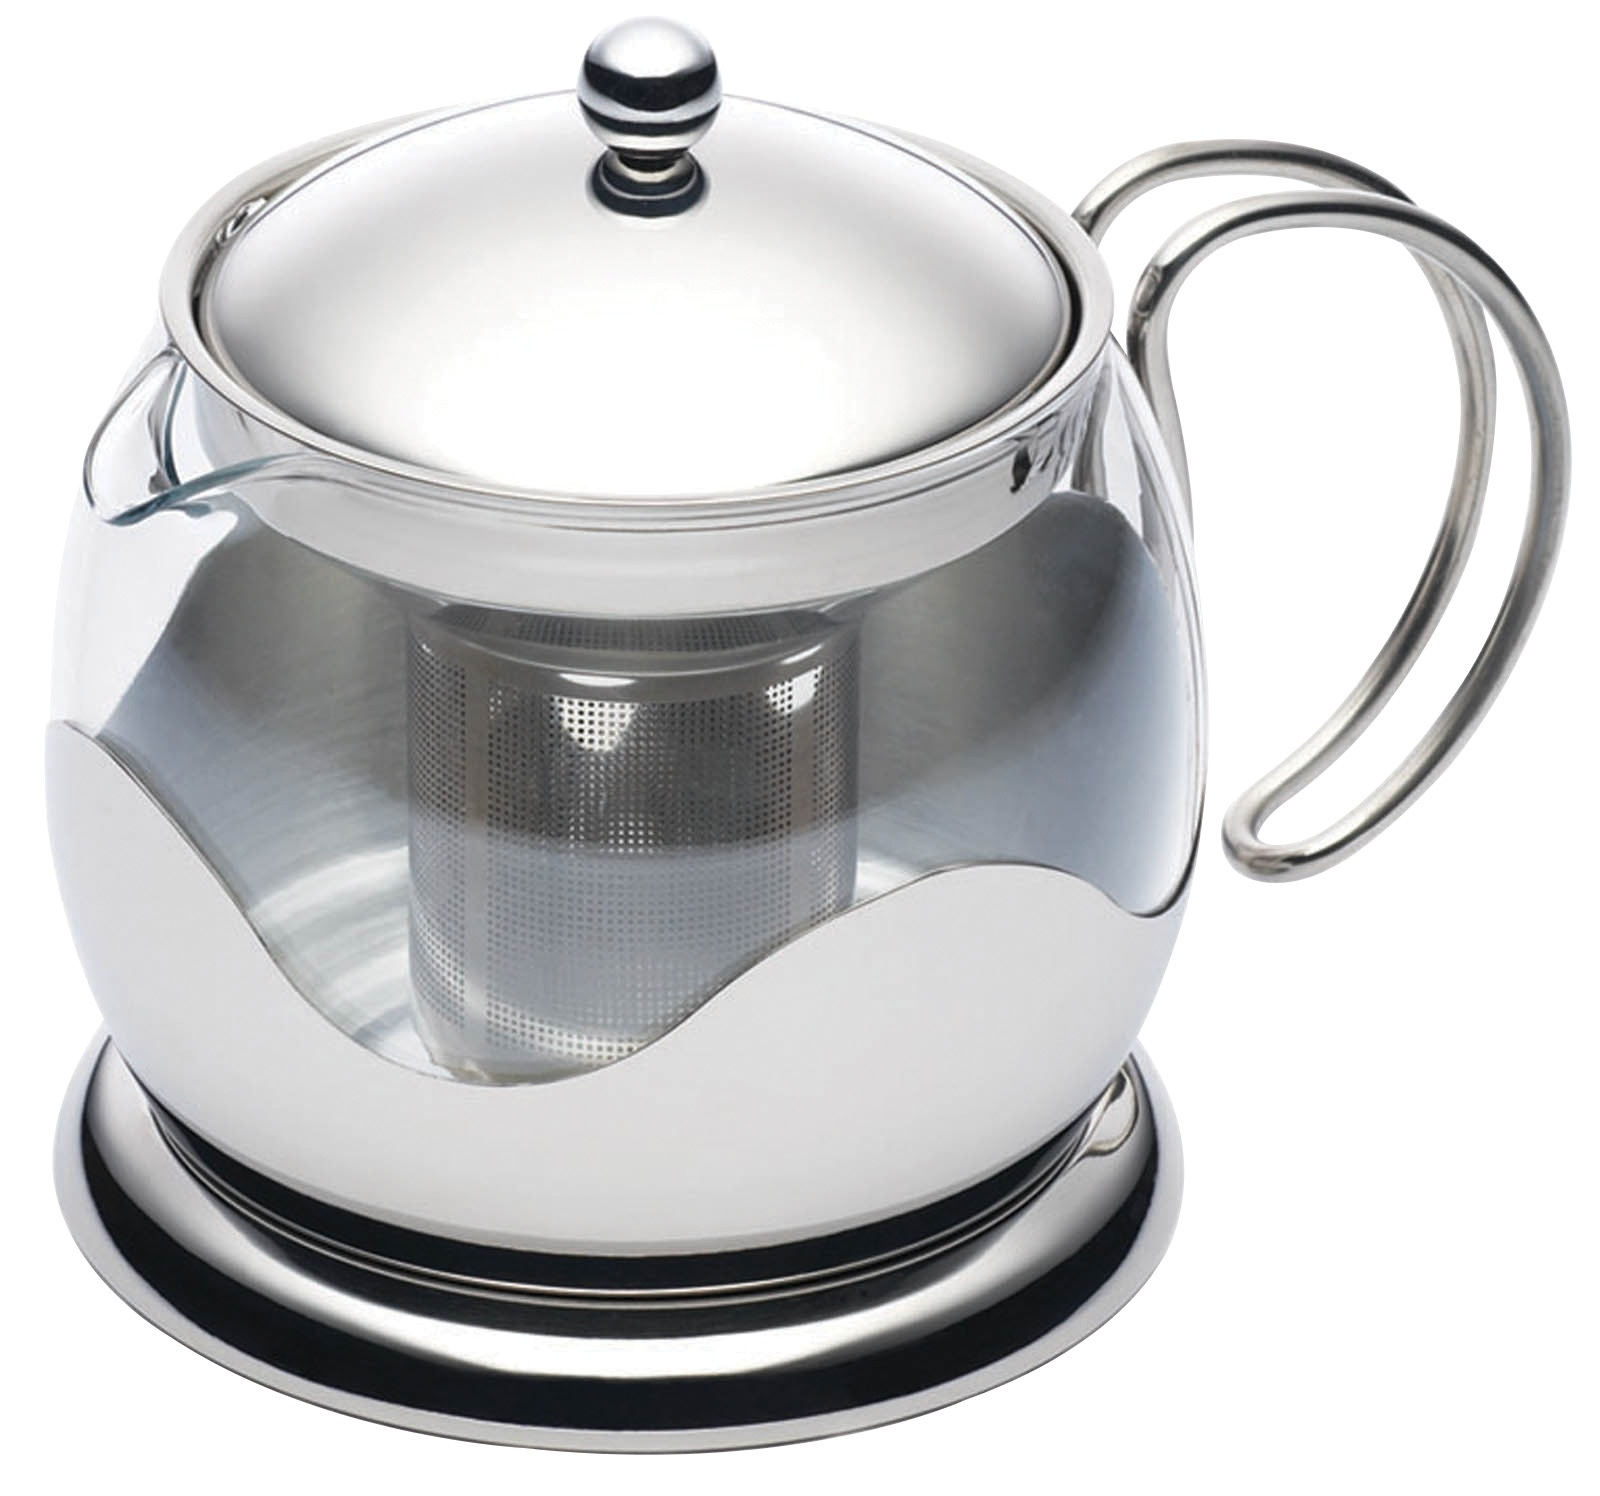 Le xpress glass 900ml infuser teapot for Kitchen xpress overseas ltd contact number